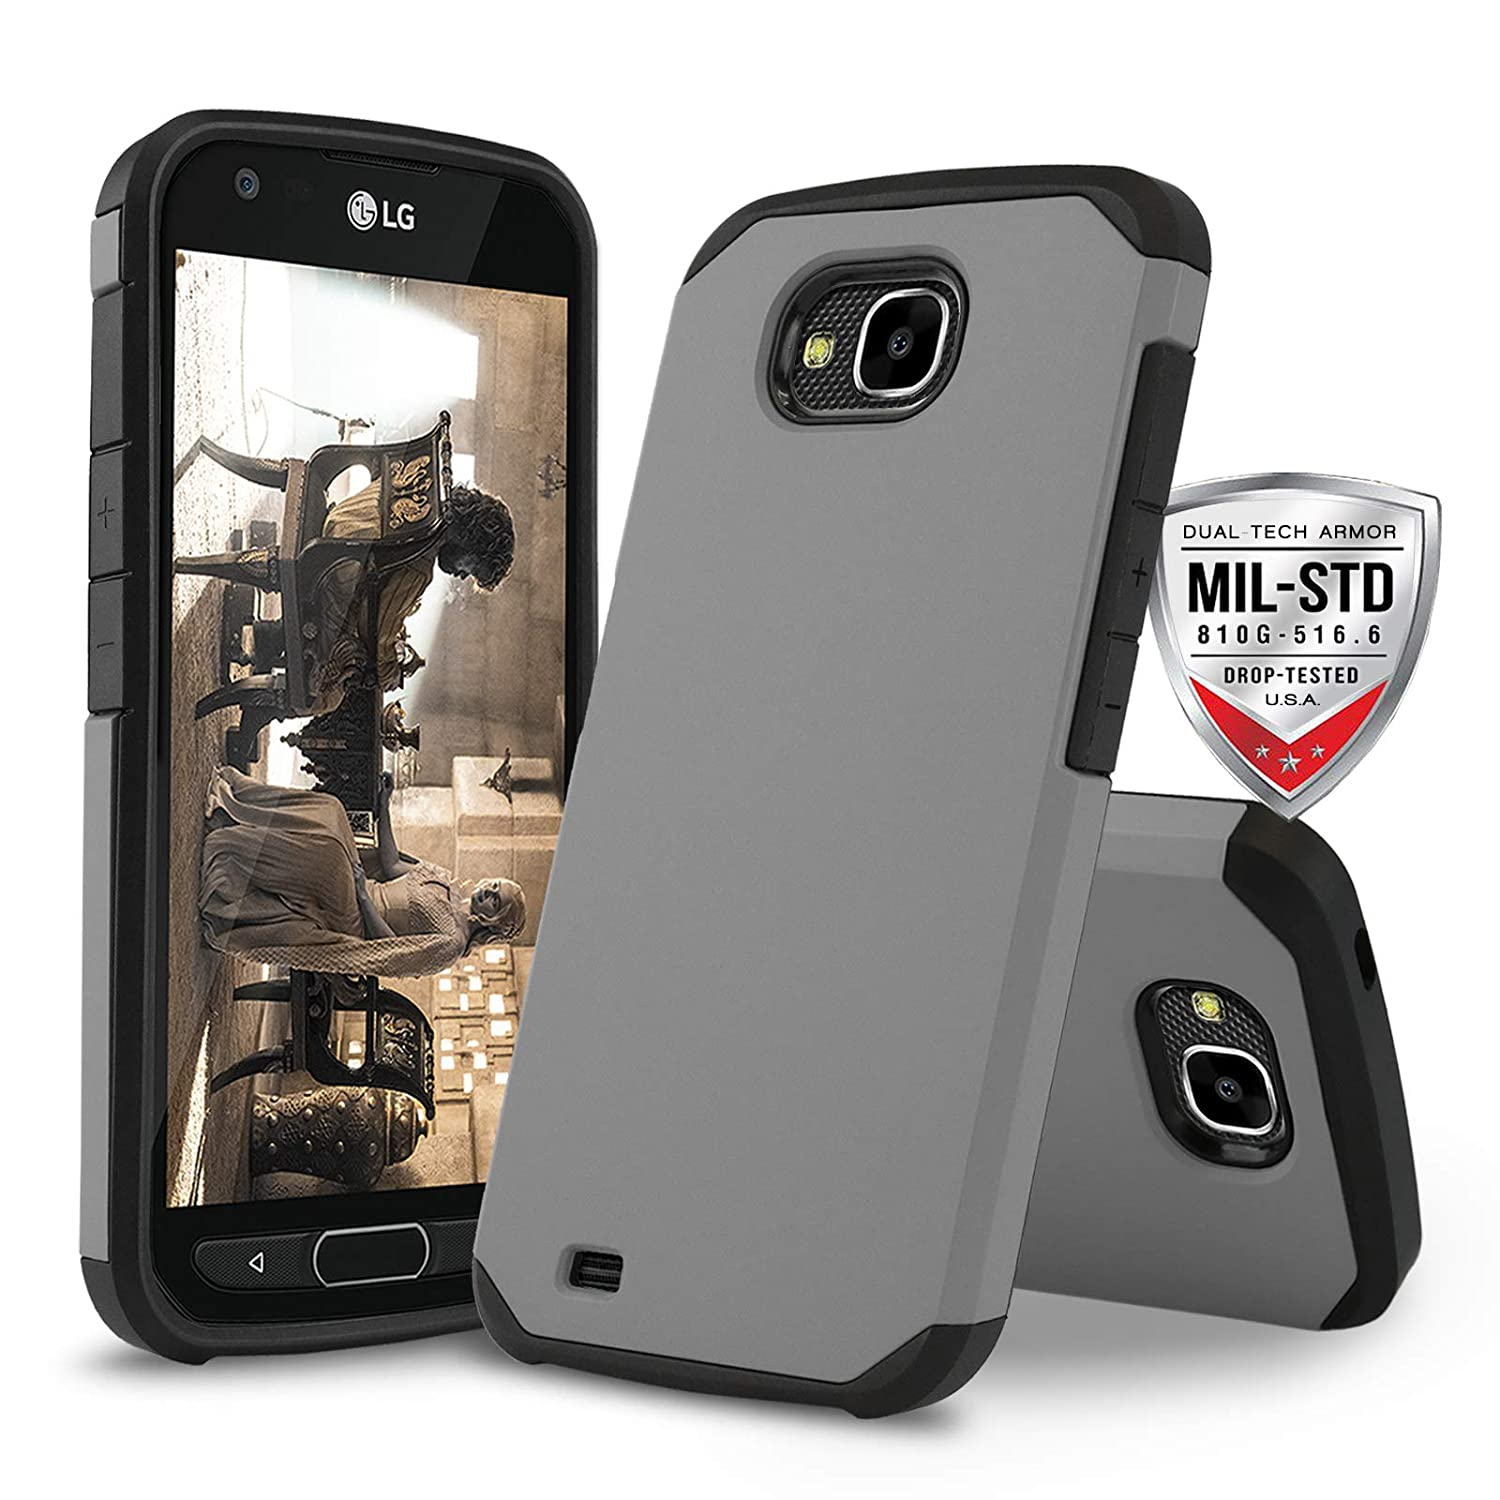 official photos 1c942 b8be6 Phone Case for [LG X Venture (AT&T, US Cellular)], [DuoTEK Series][Gray]  Shockproof Hybrid Cover [Impact Resistant][Defender] Cases for LG X Venture  ...